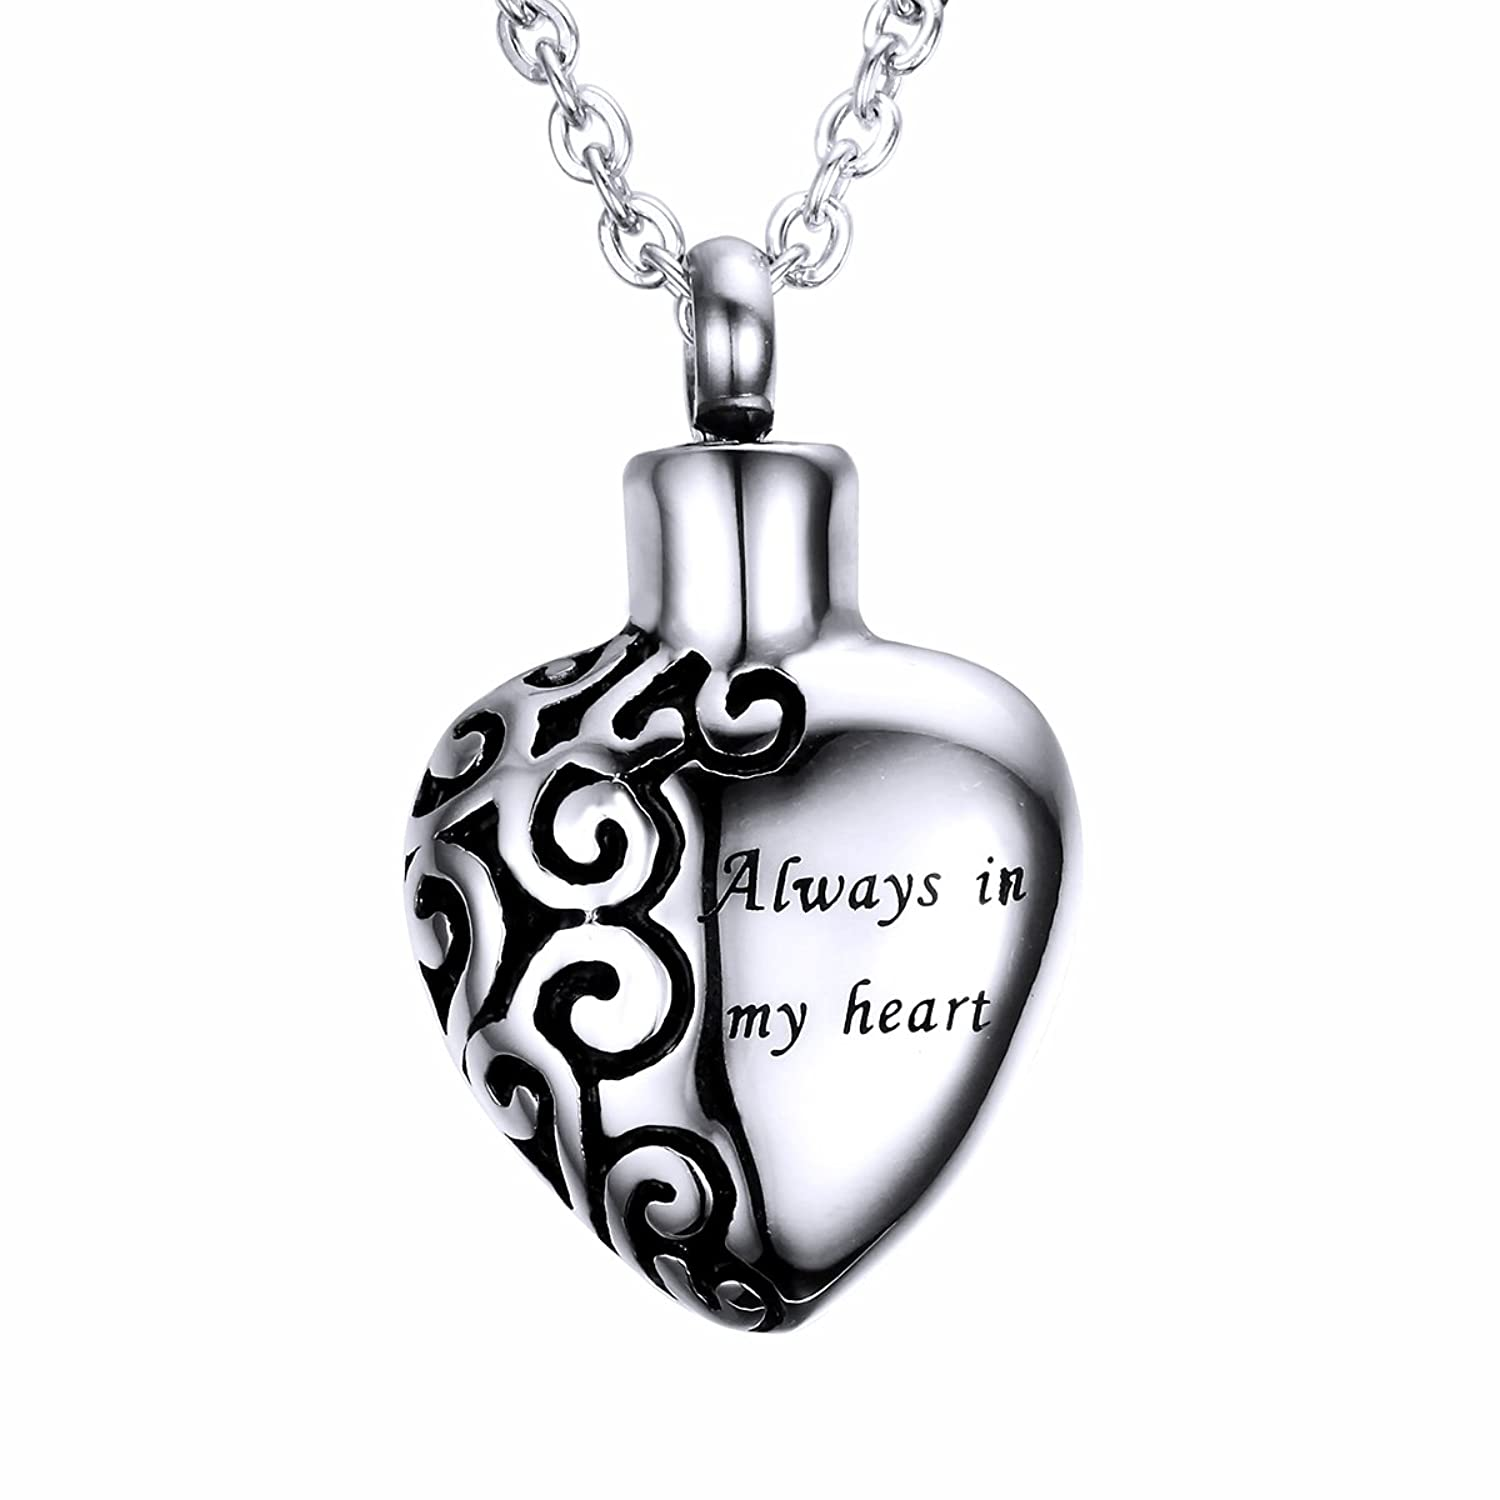 necklace ash memorial in new feather heart the locket usa jewelry itm free zarabe cremation urn keepsake pendant shipping meml from